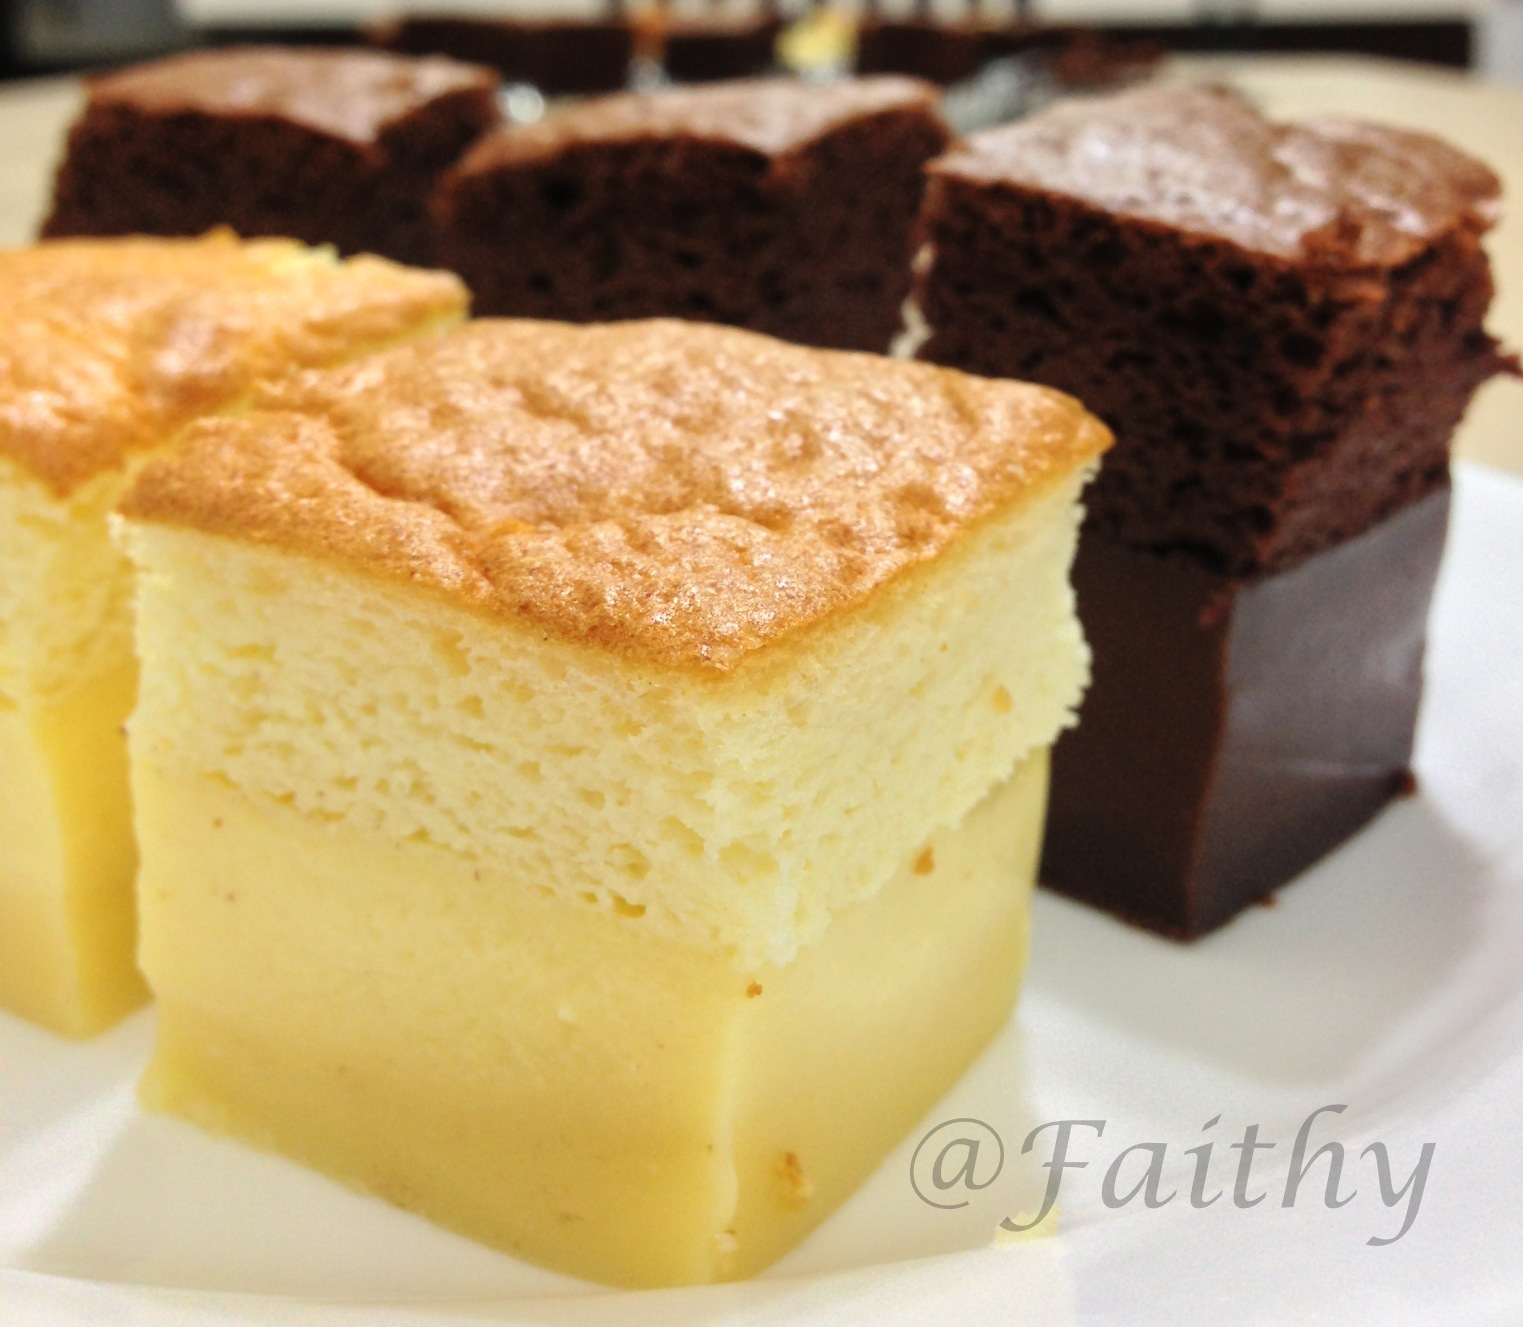 diary of Faithy the baker Magic Cake